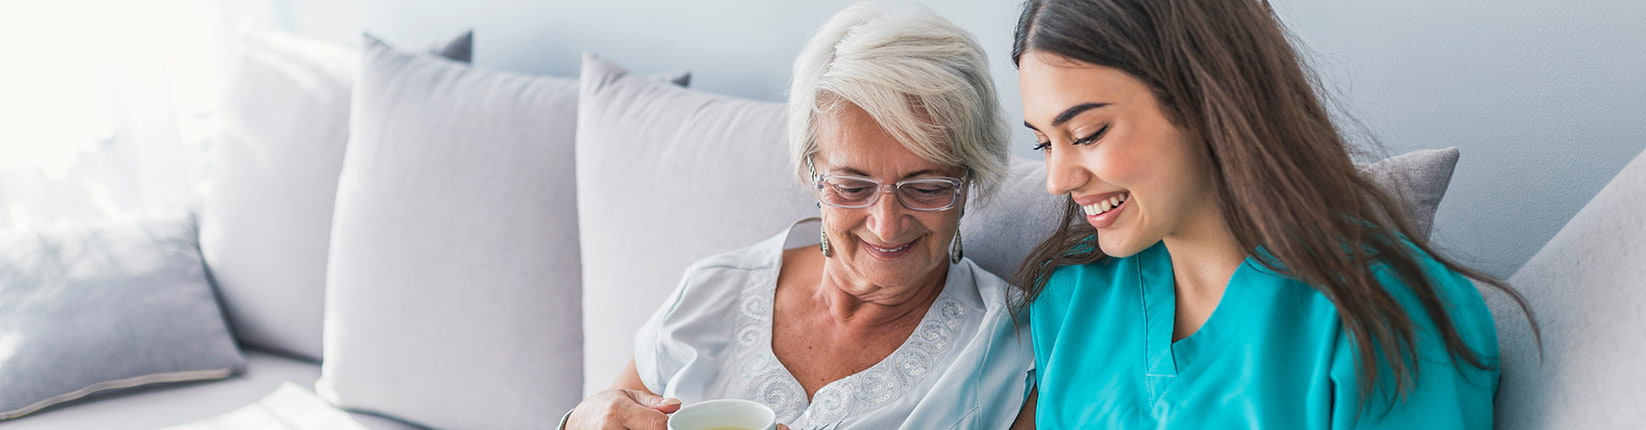 woman drinking tea with caregiver